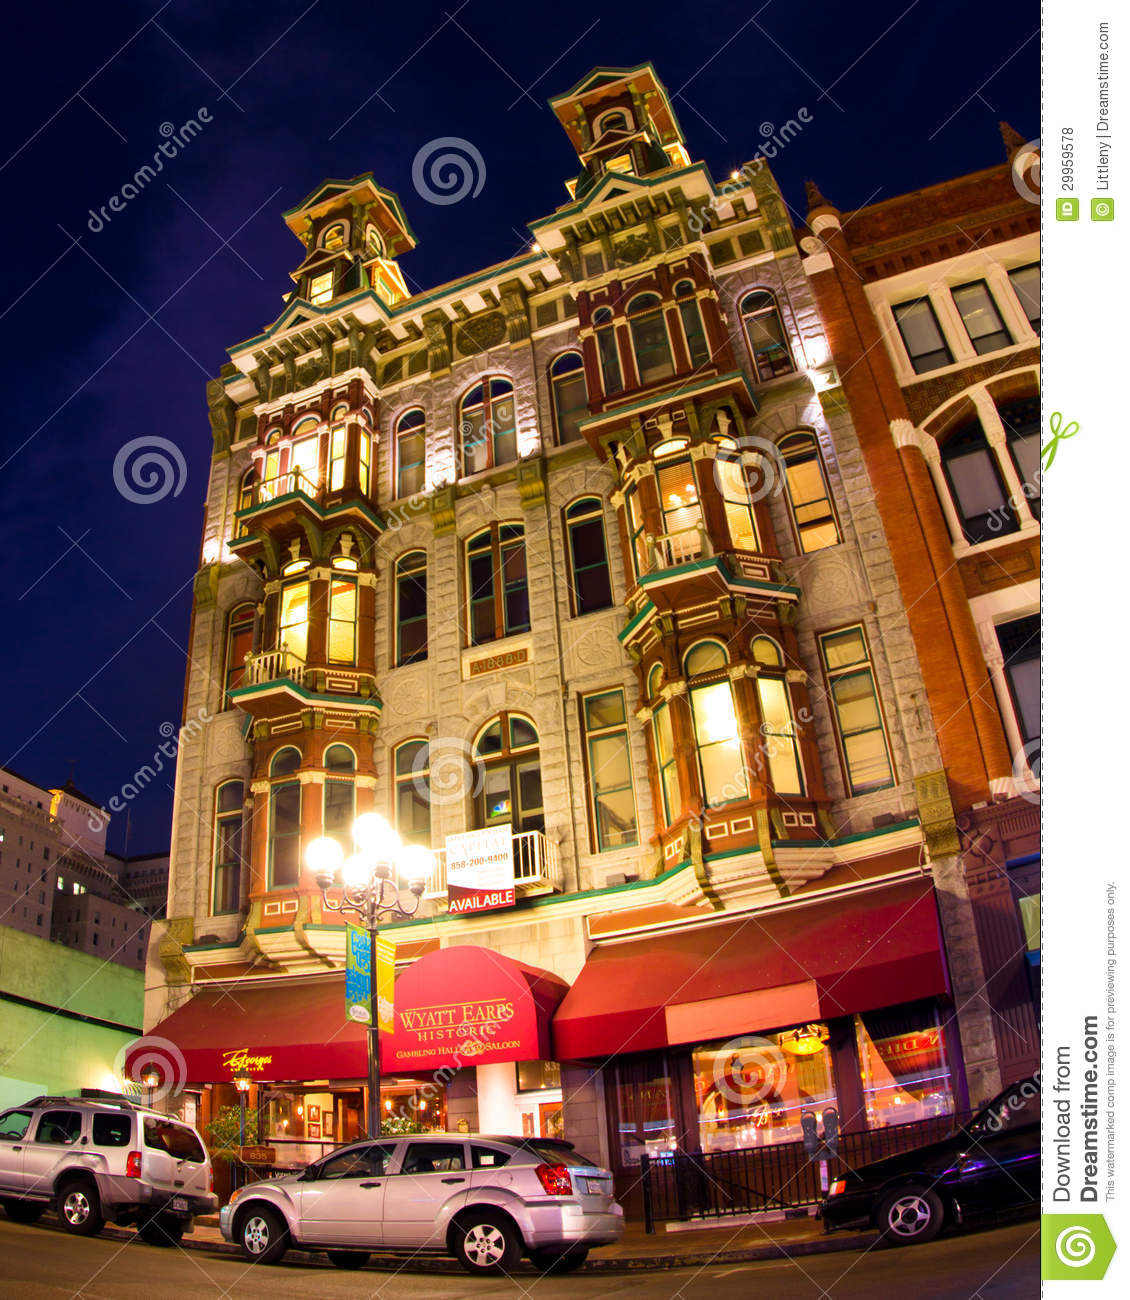 Best Bar Gaslamp District: Gaslamp Quarter San Diego Editorial Stock Photo. Image Of